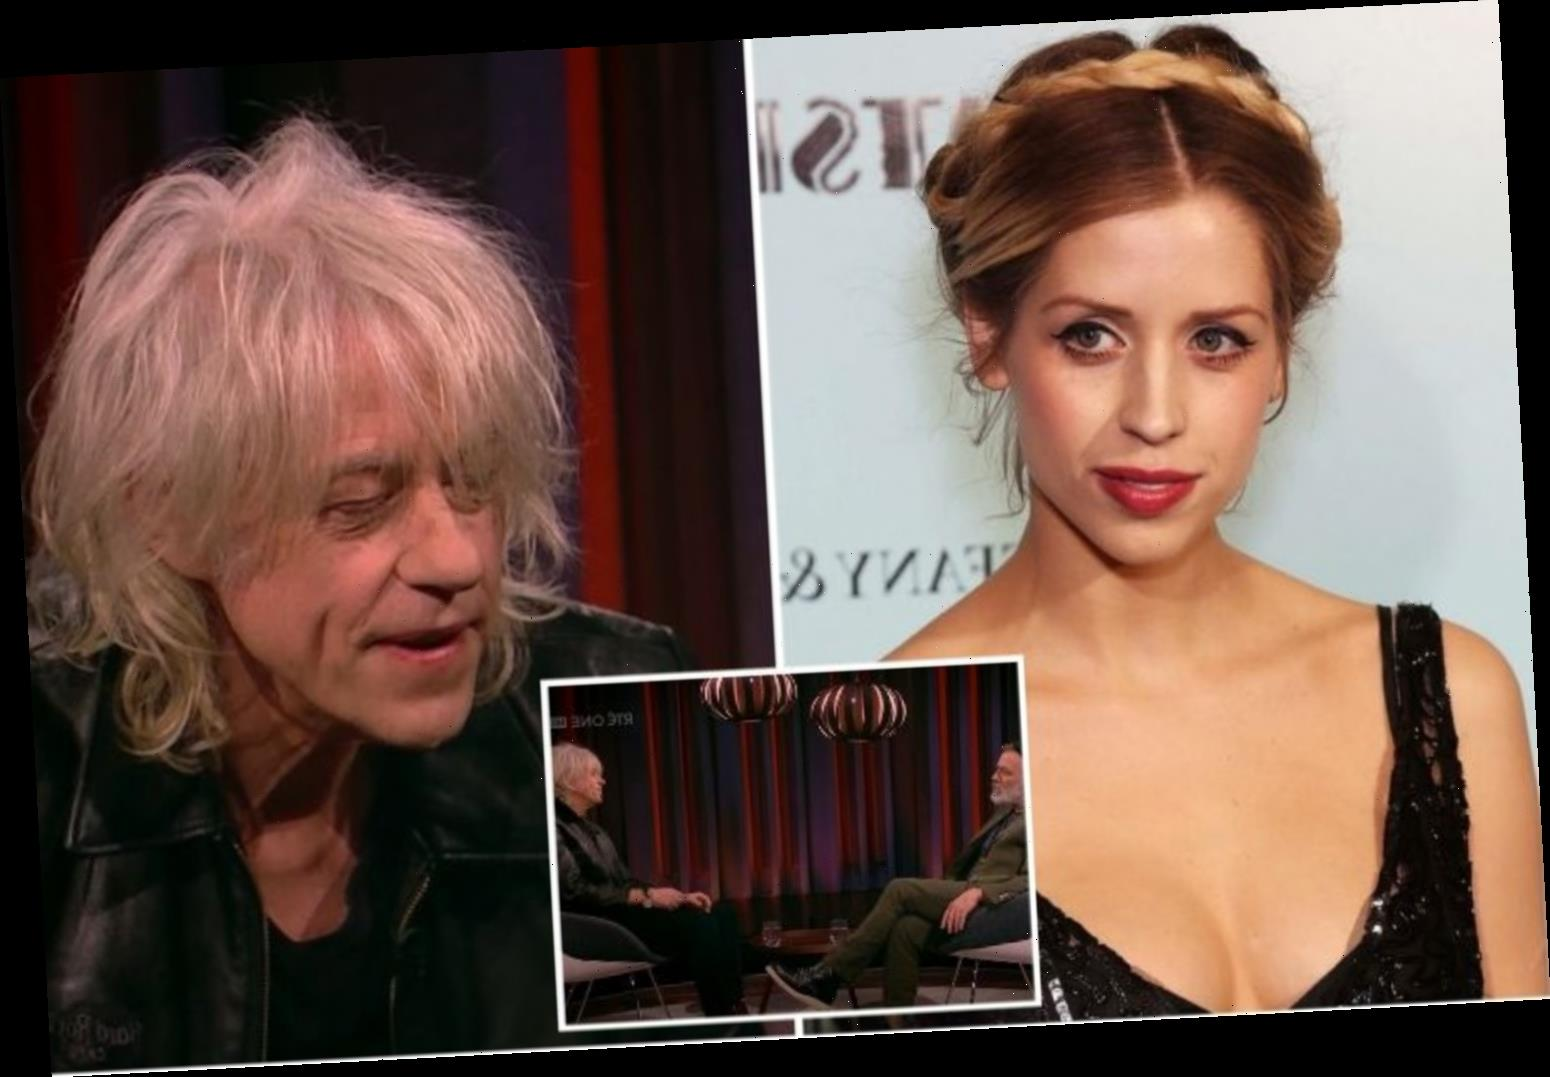 Bob Geldof opens up about 'unbearable' grief of daughter Peaches' heroin death in emotional television appearance – The Sun